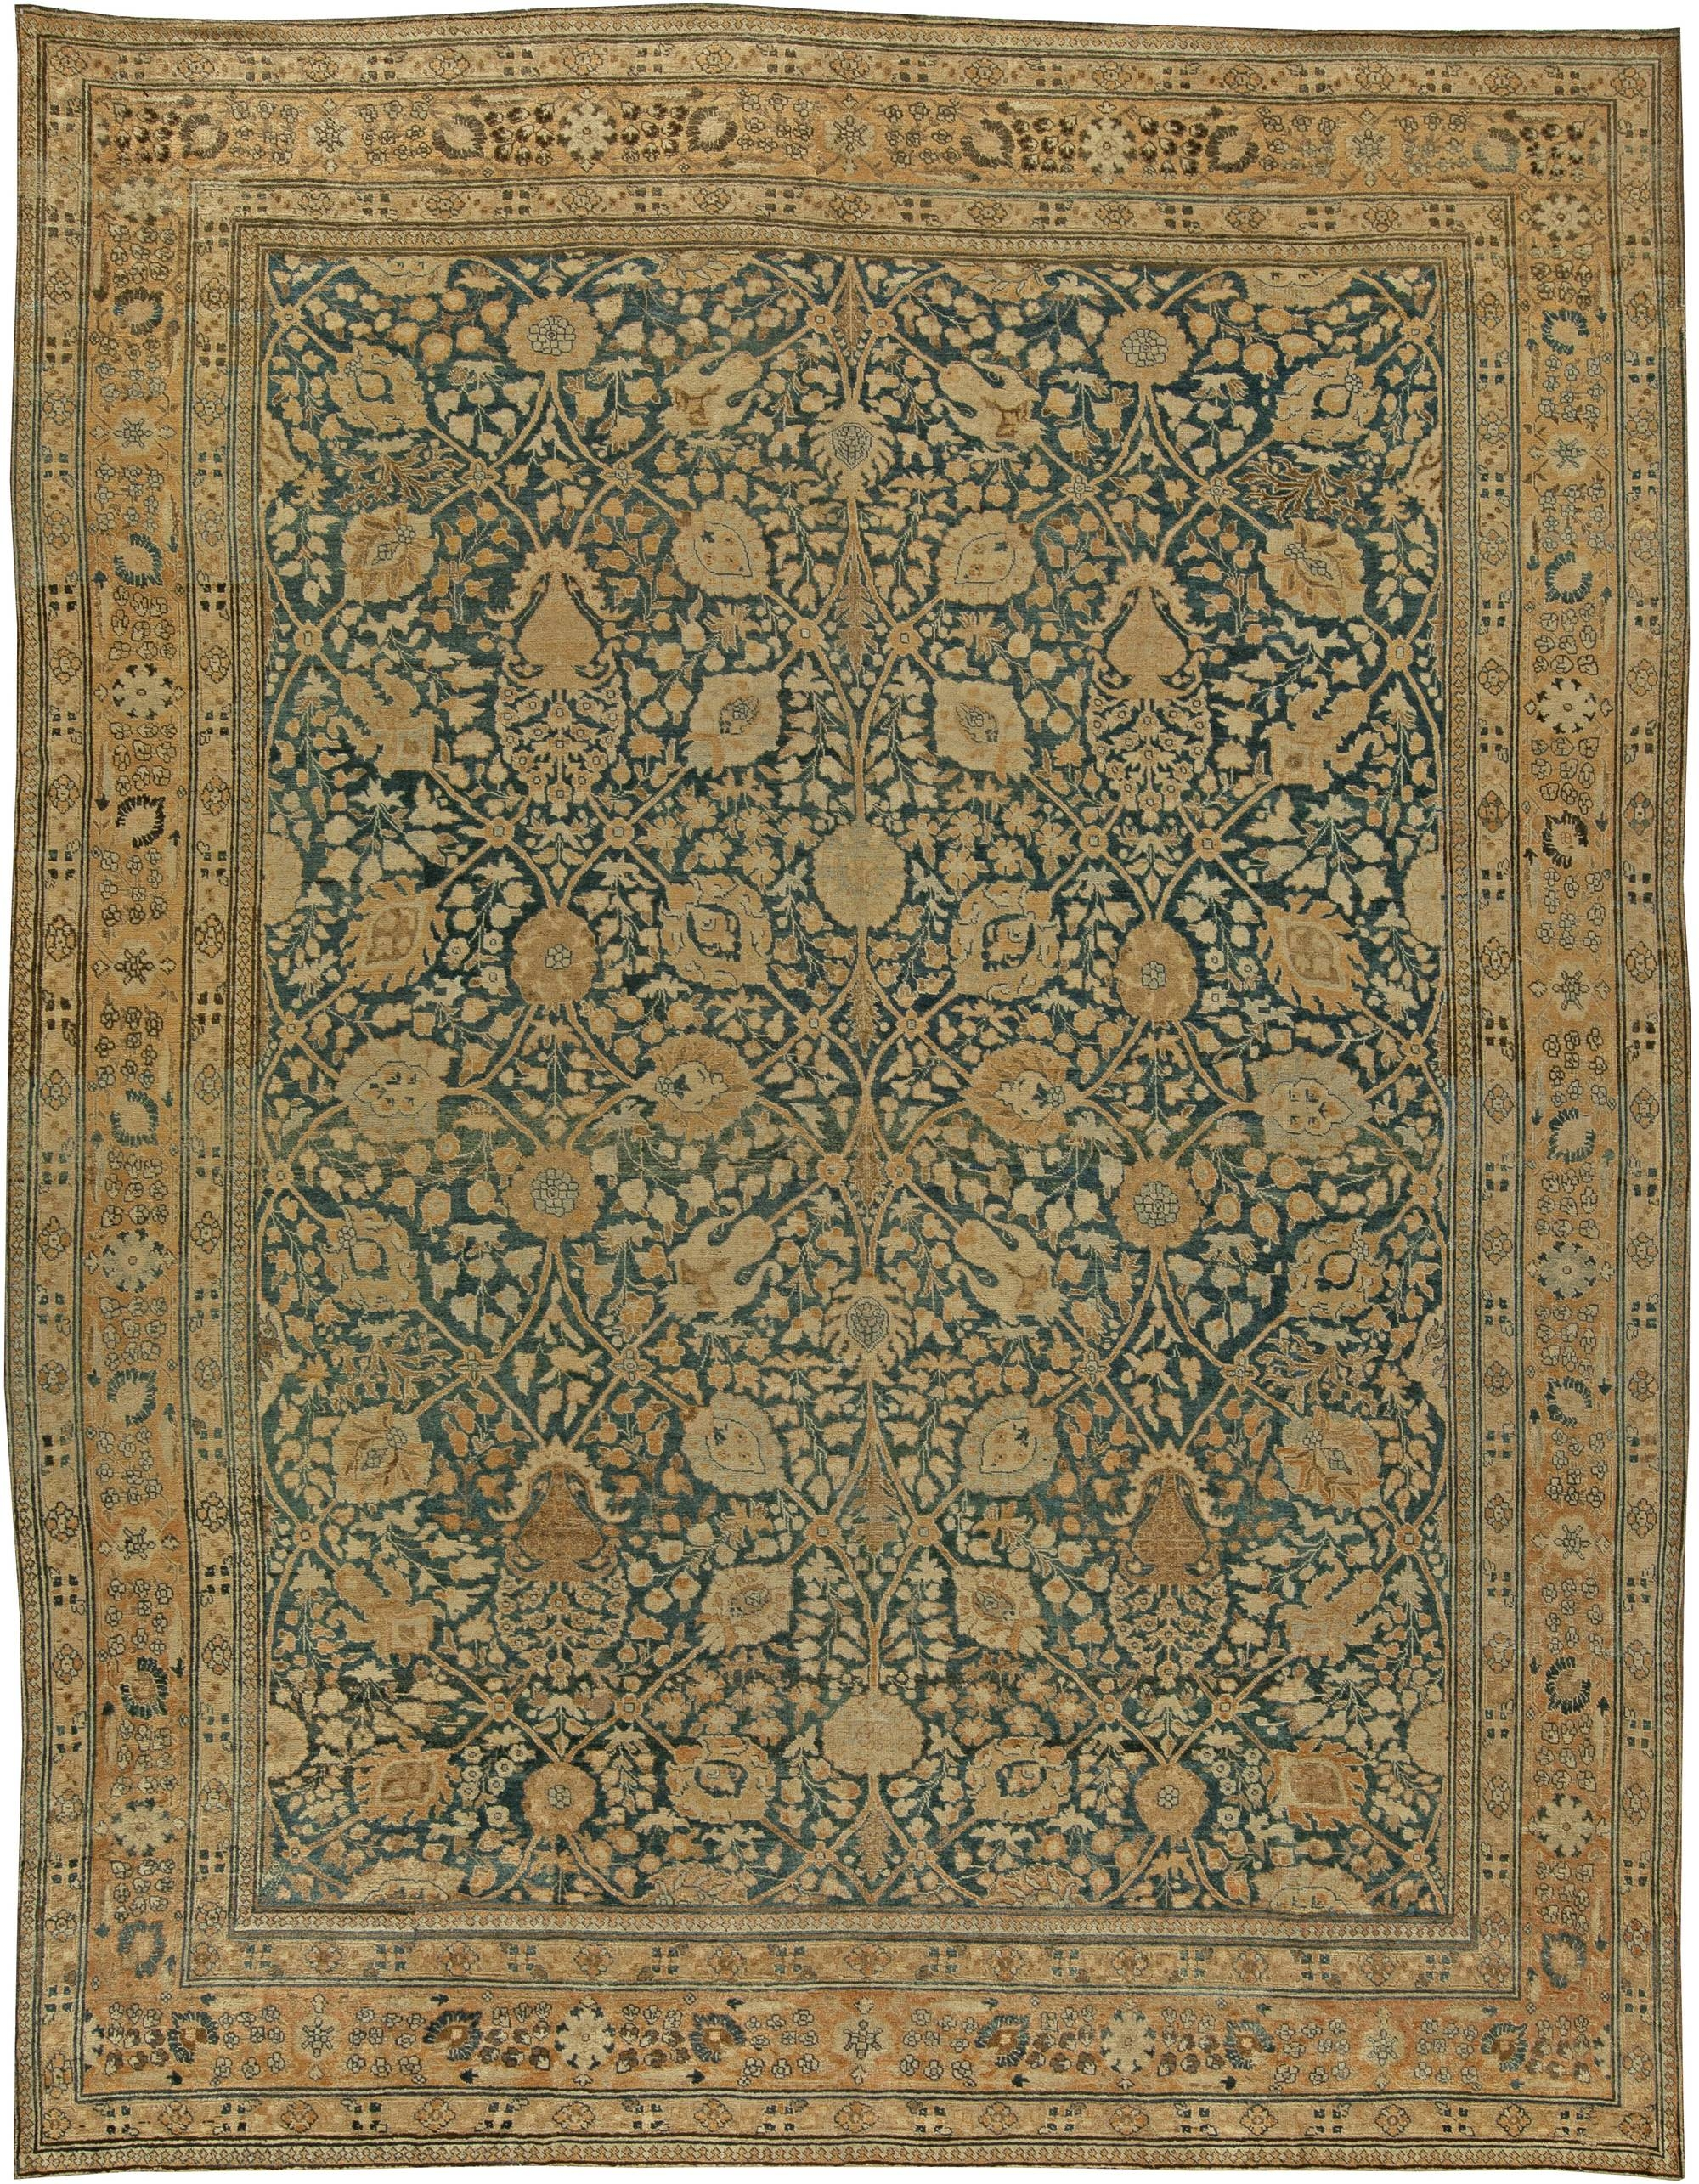 Antique Persian Rugs And Antique Oriental Rugs Regarding Oriental Persian Rugs (Image 4 of 15)